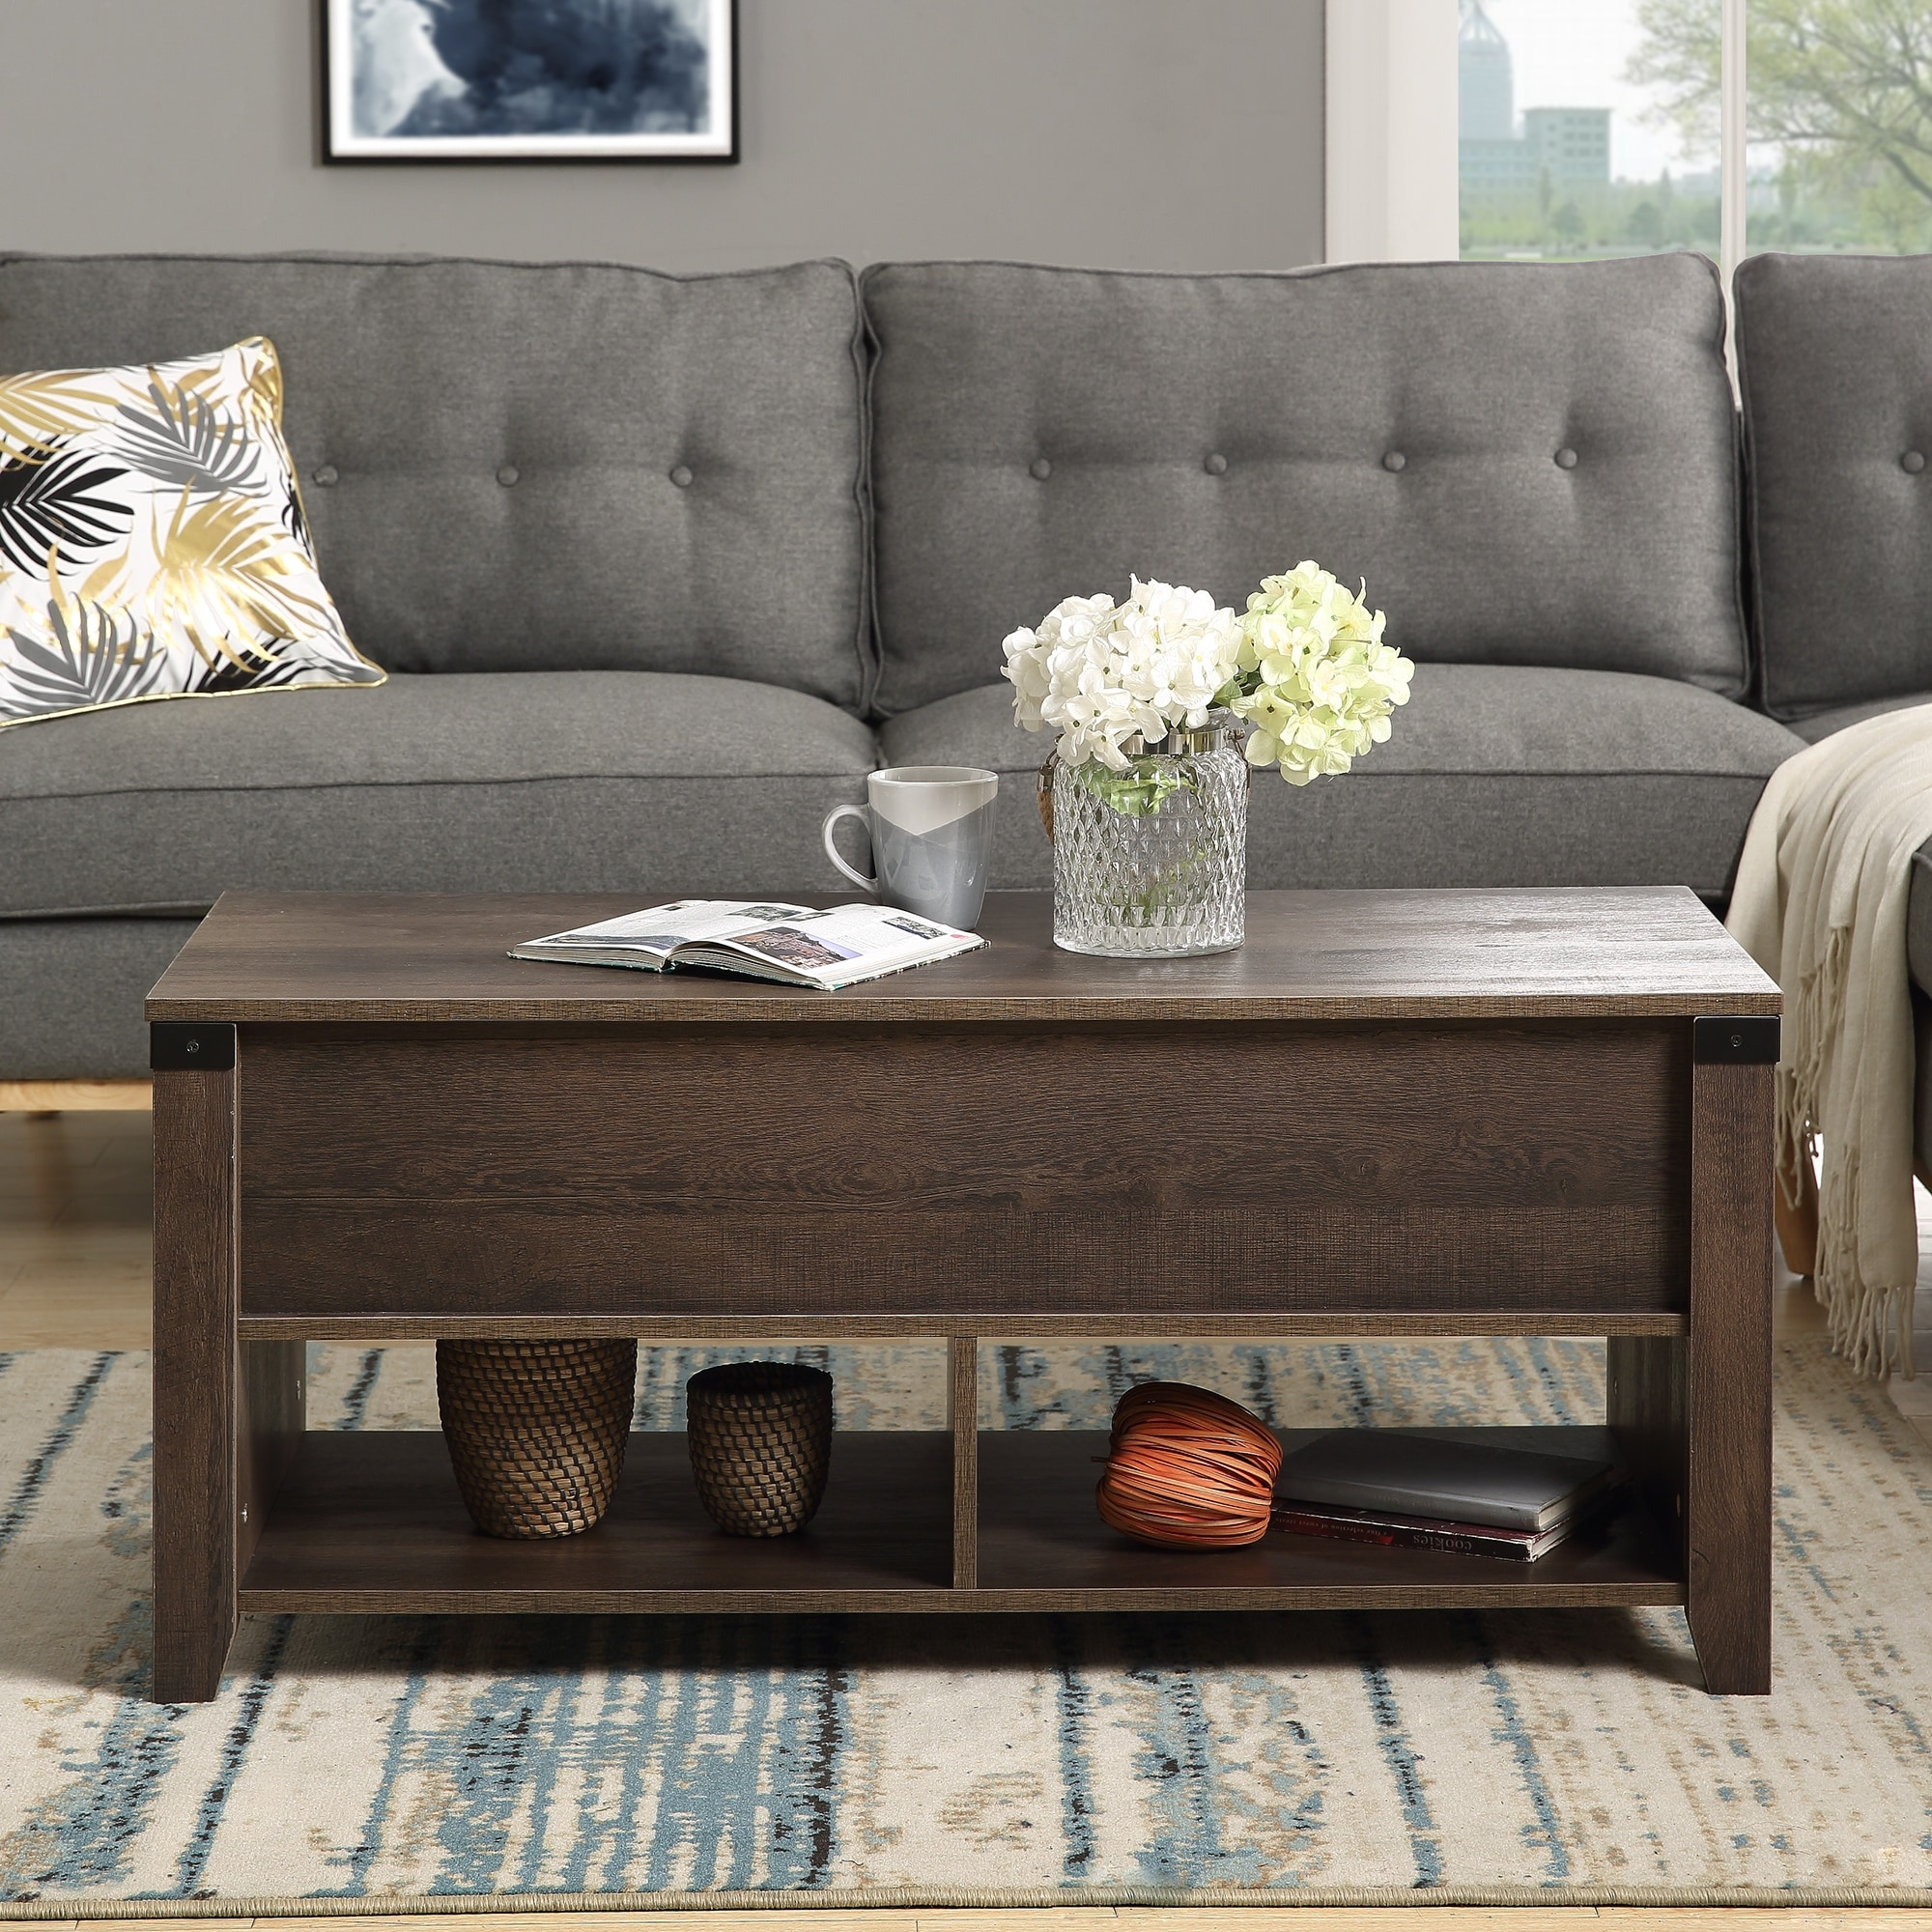 Multipurpose Coffee Table With Drawers Open Shelf And Storage Overstock 31990060